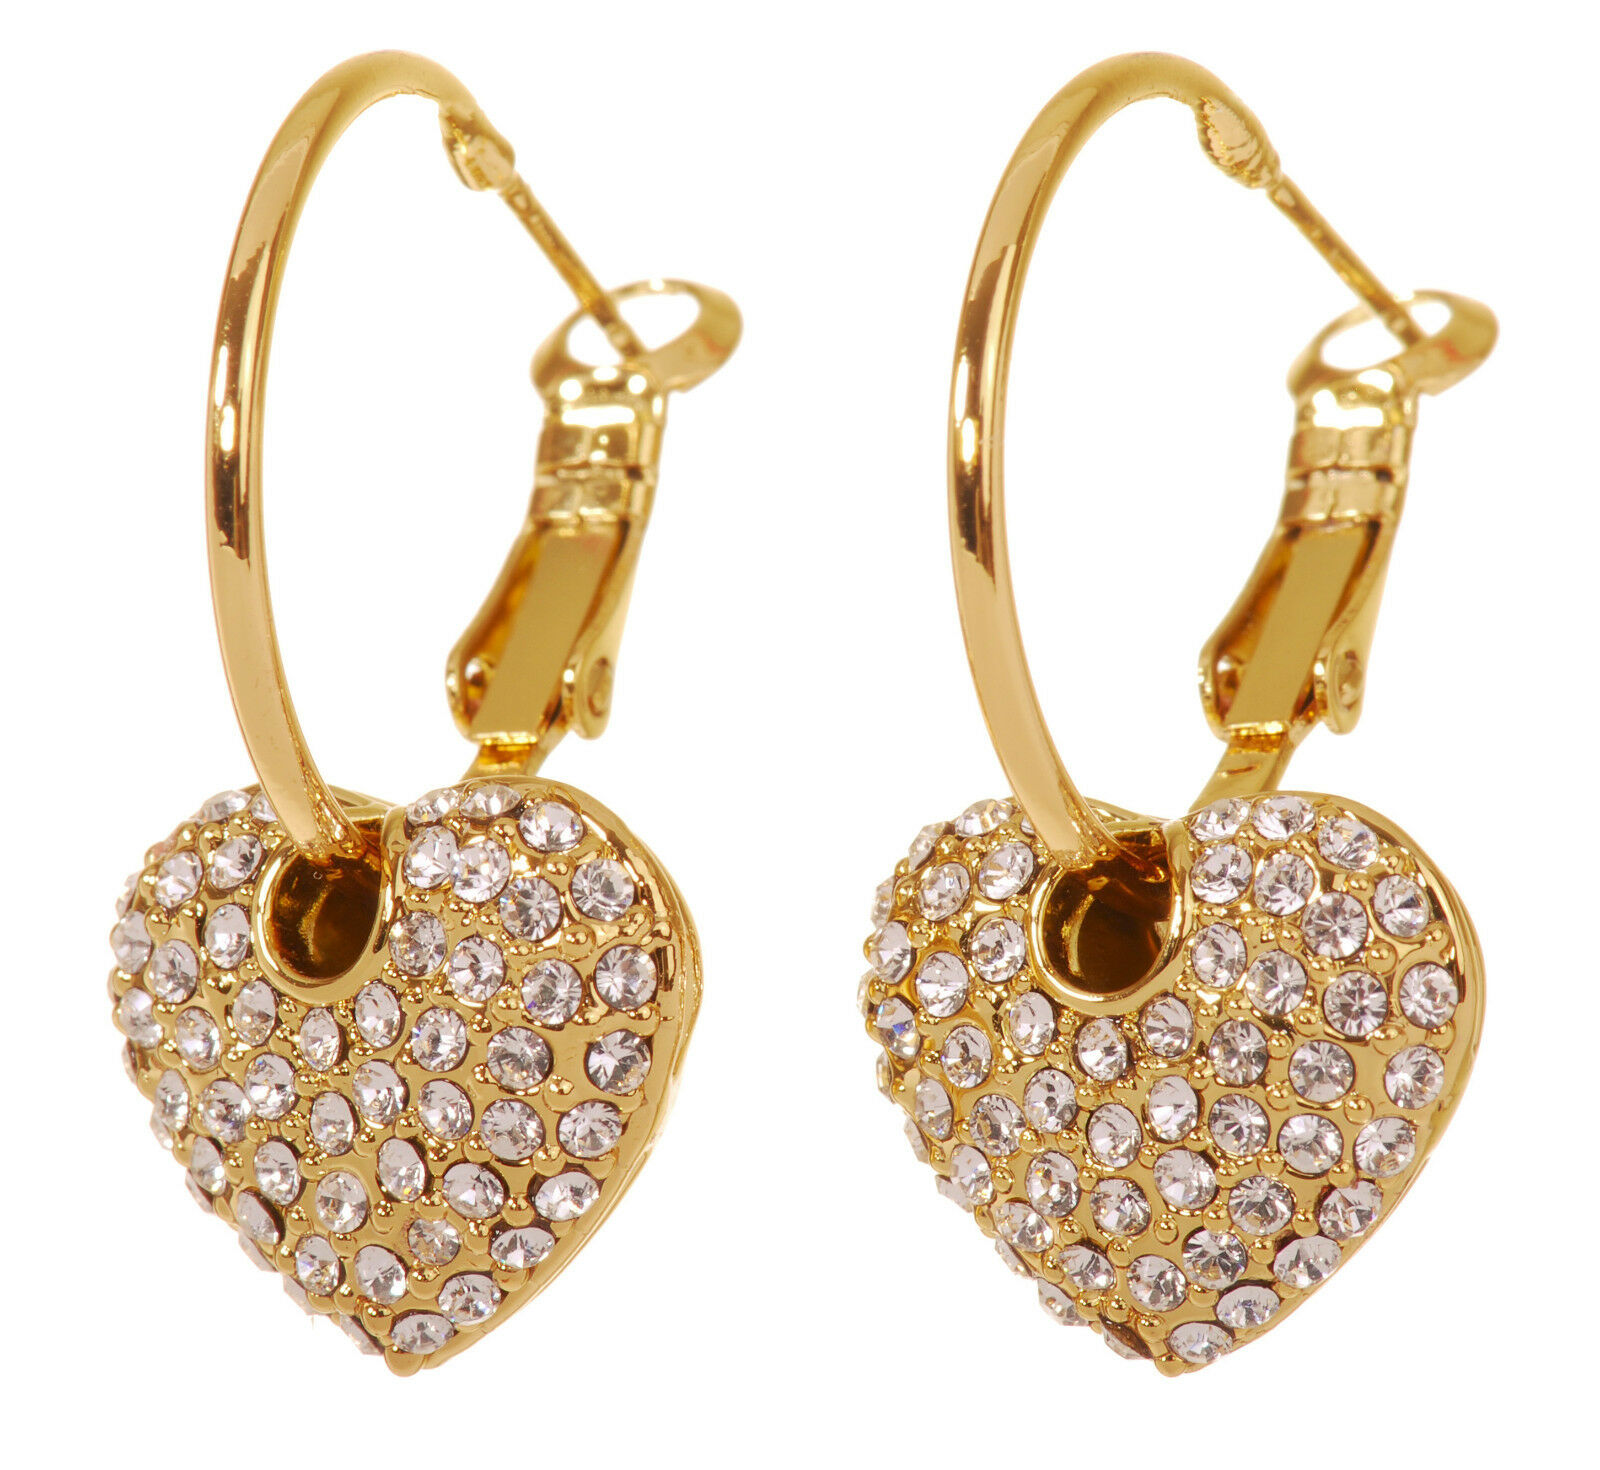 Swarovski Elements Crystal Starlet Puffed Heart Earrings gold Authentic 7117y